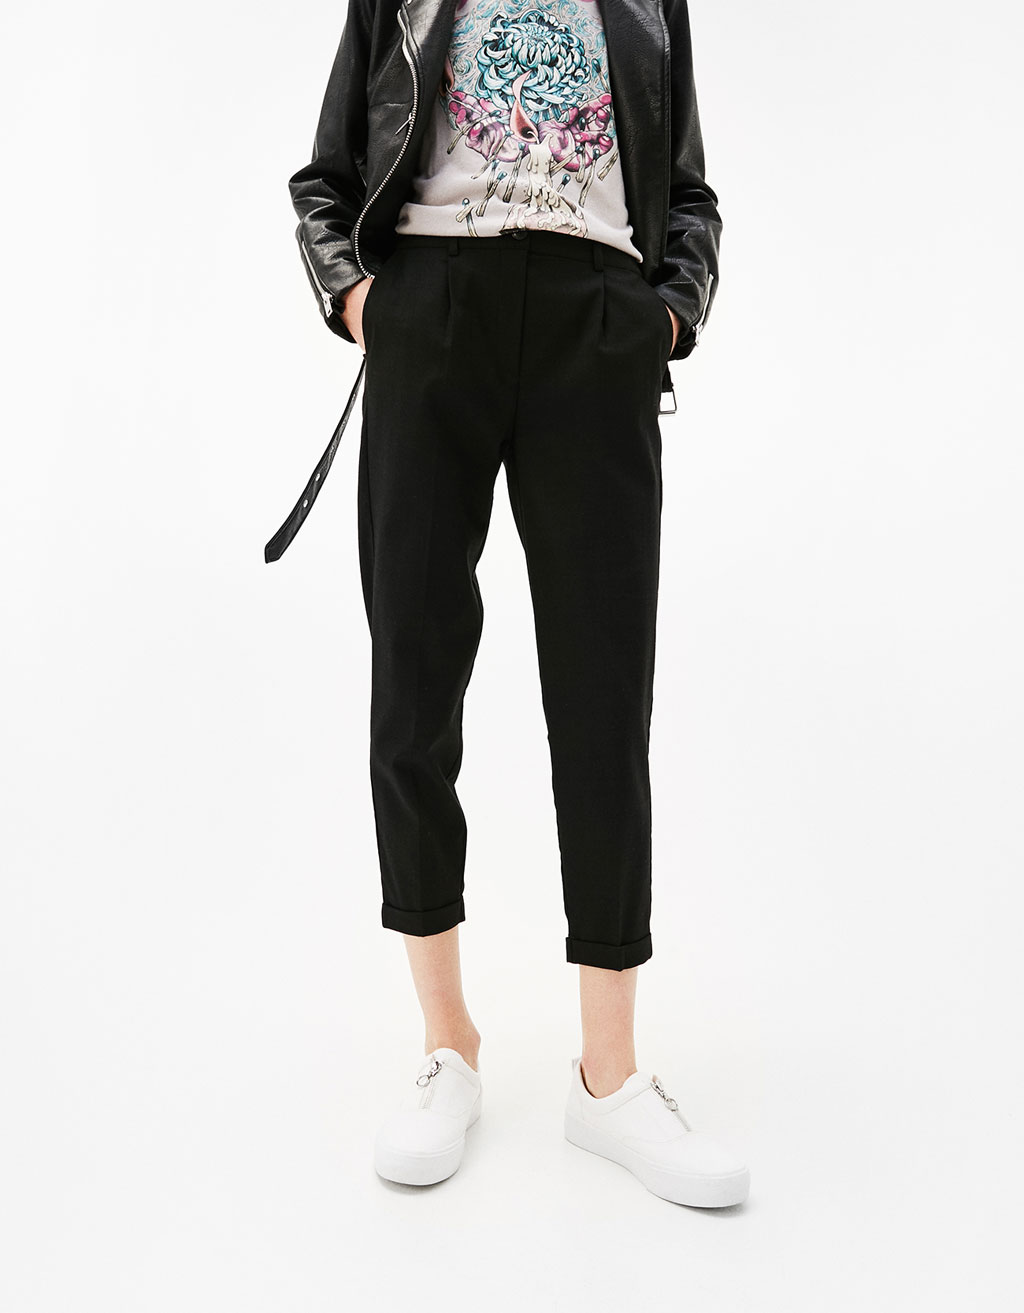 Tailored joggers with pleats